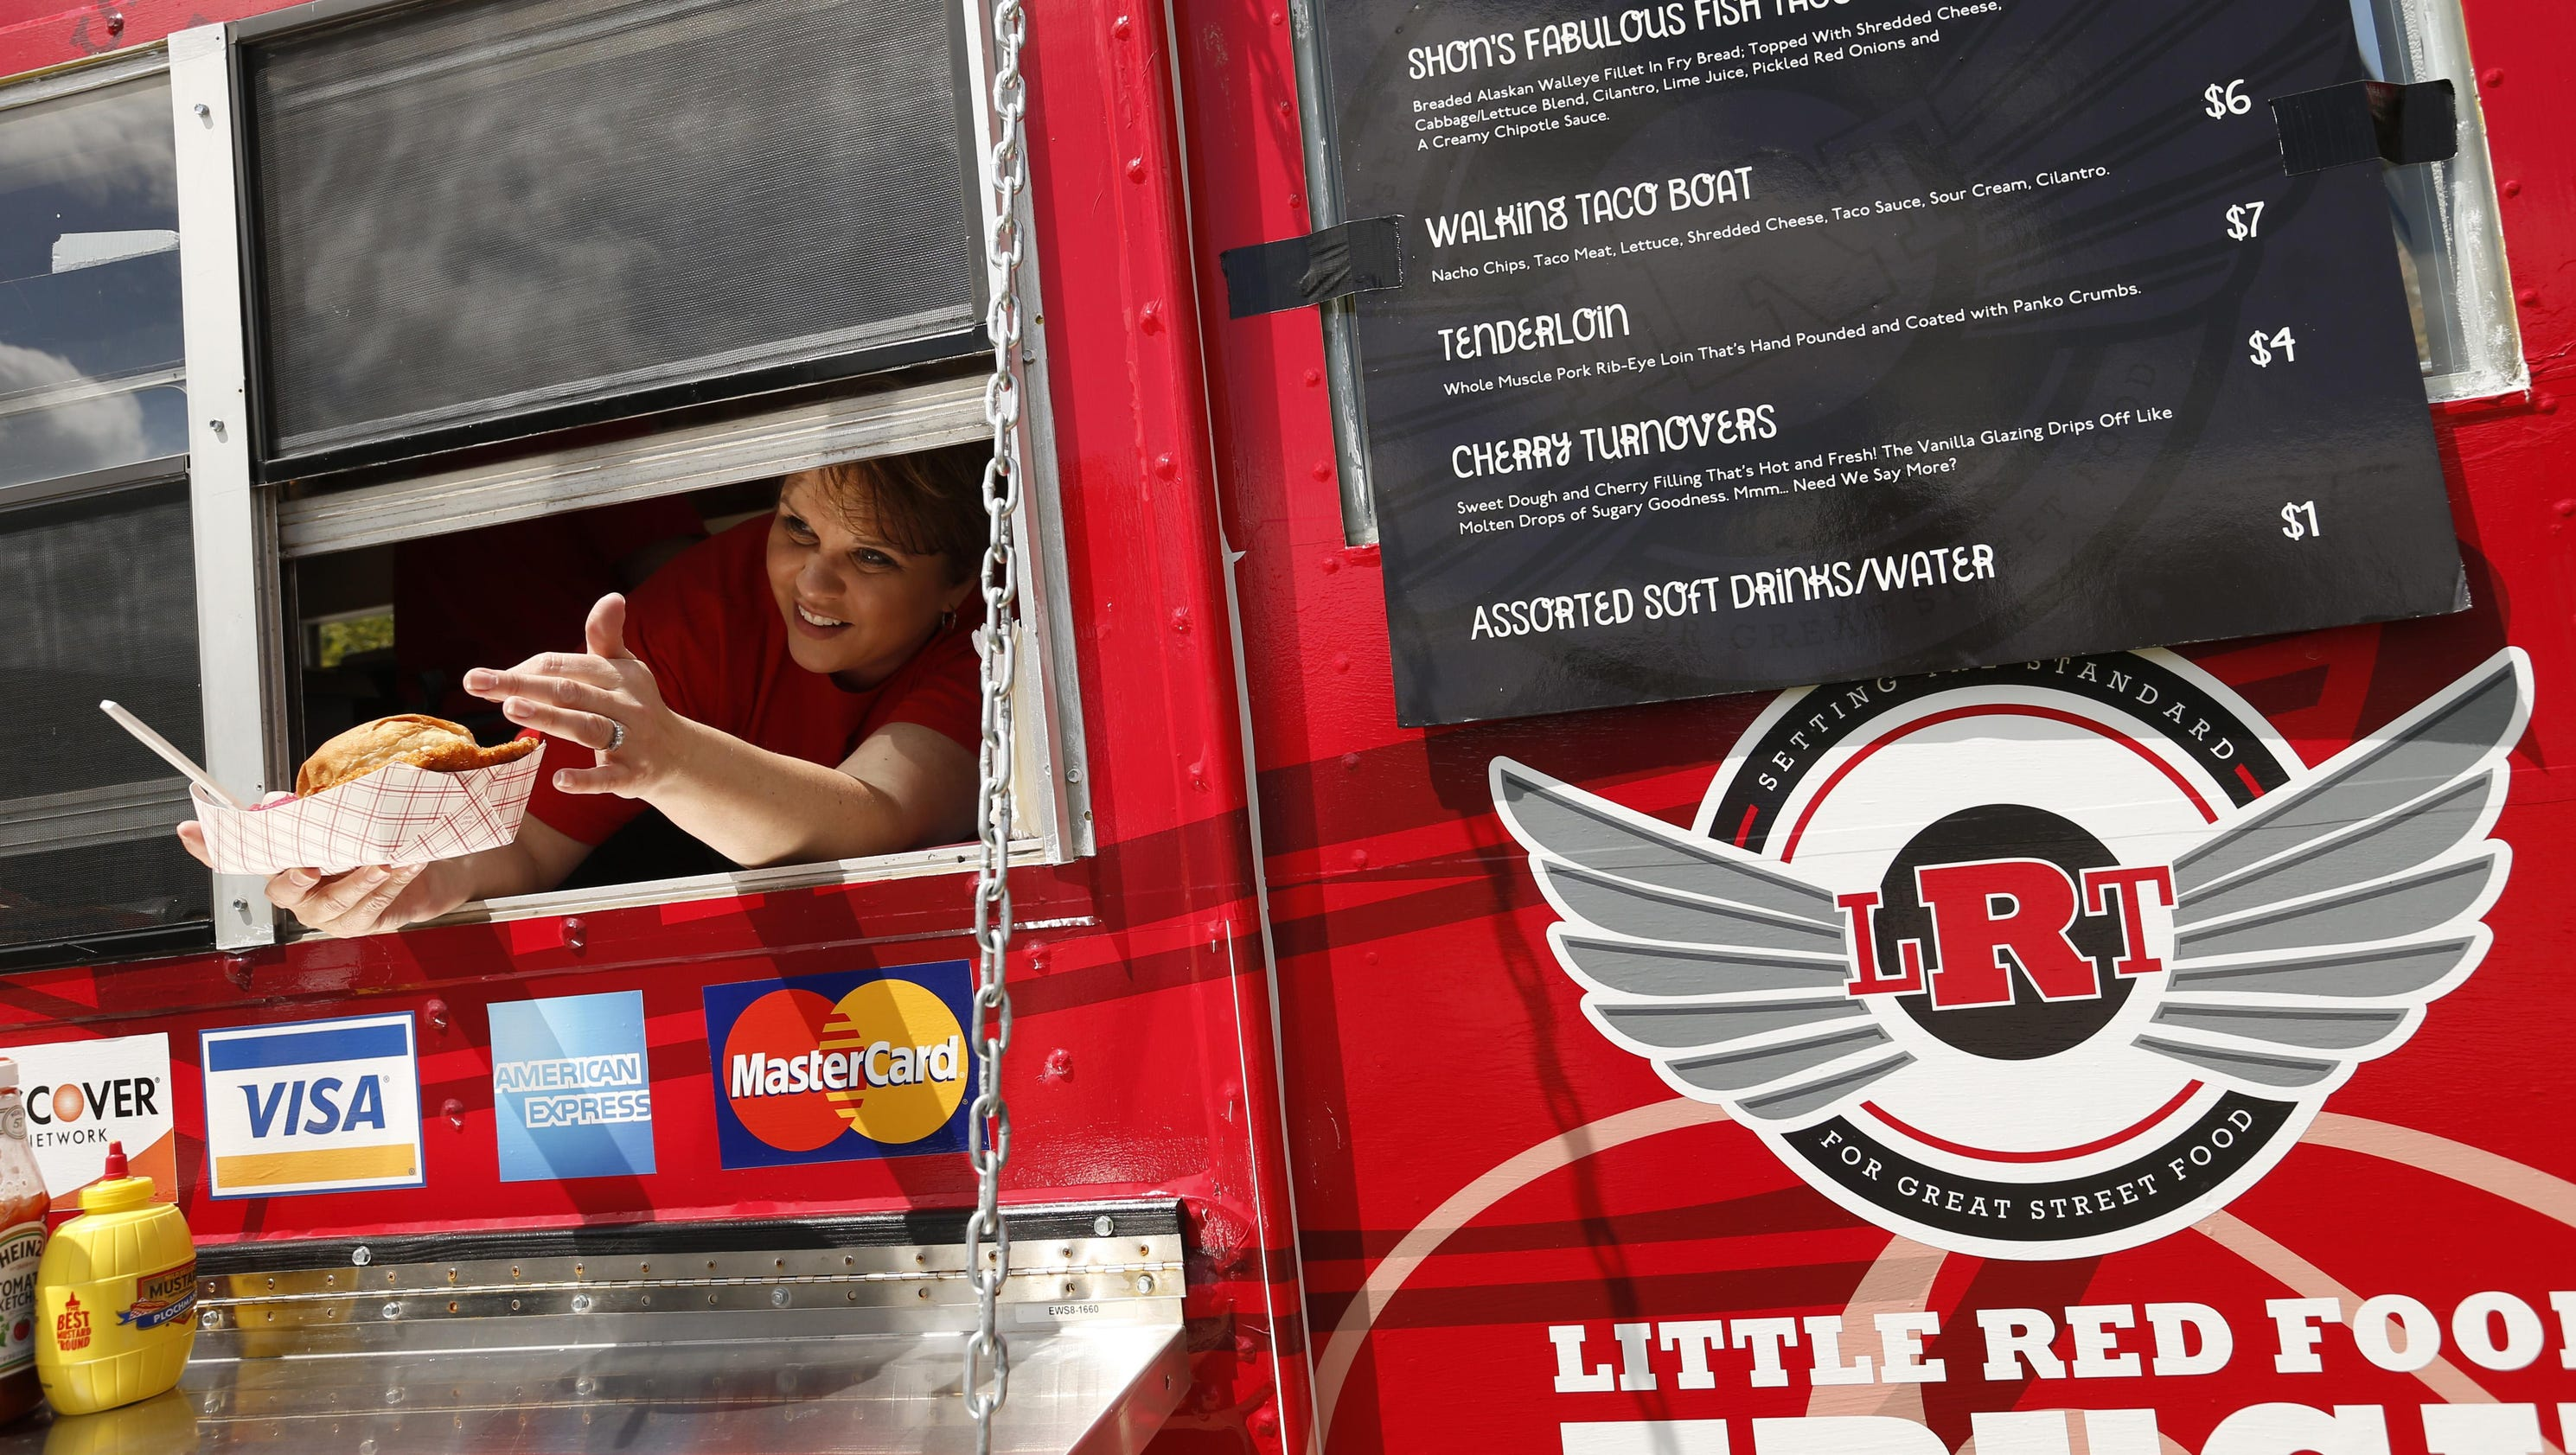 Where Are The Food Trucks In Des Moines